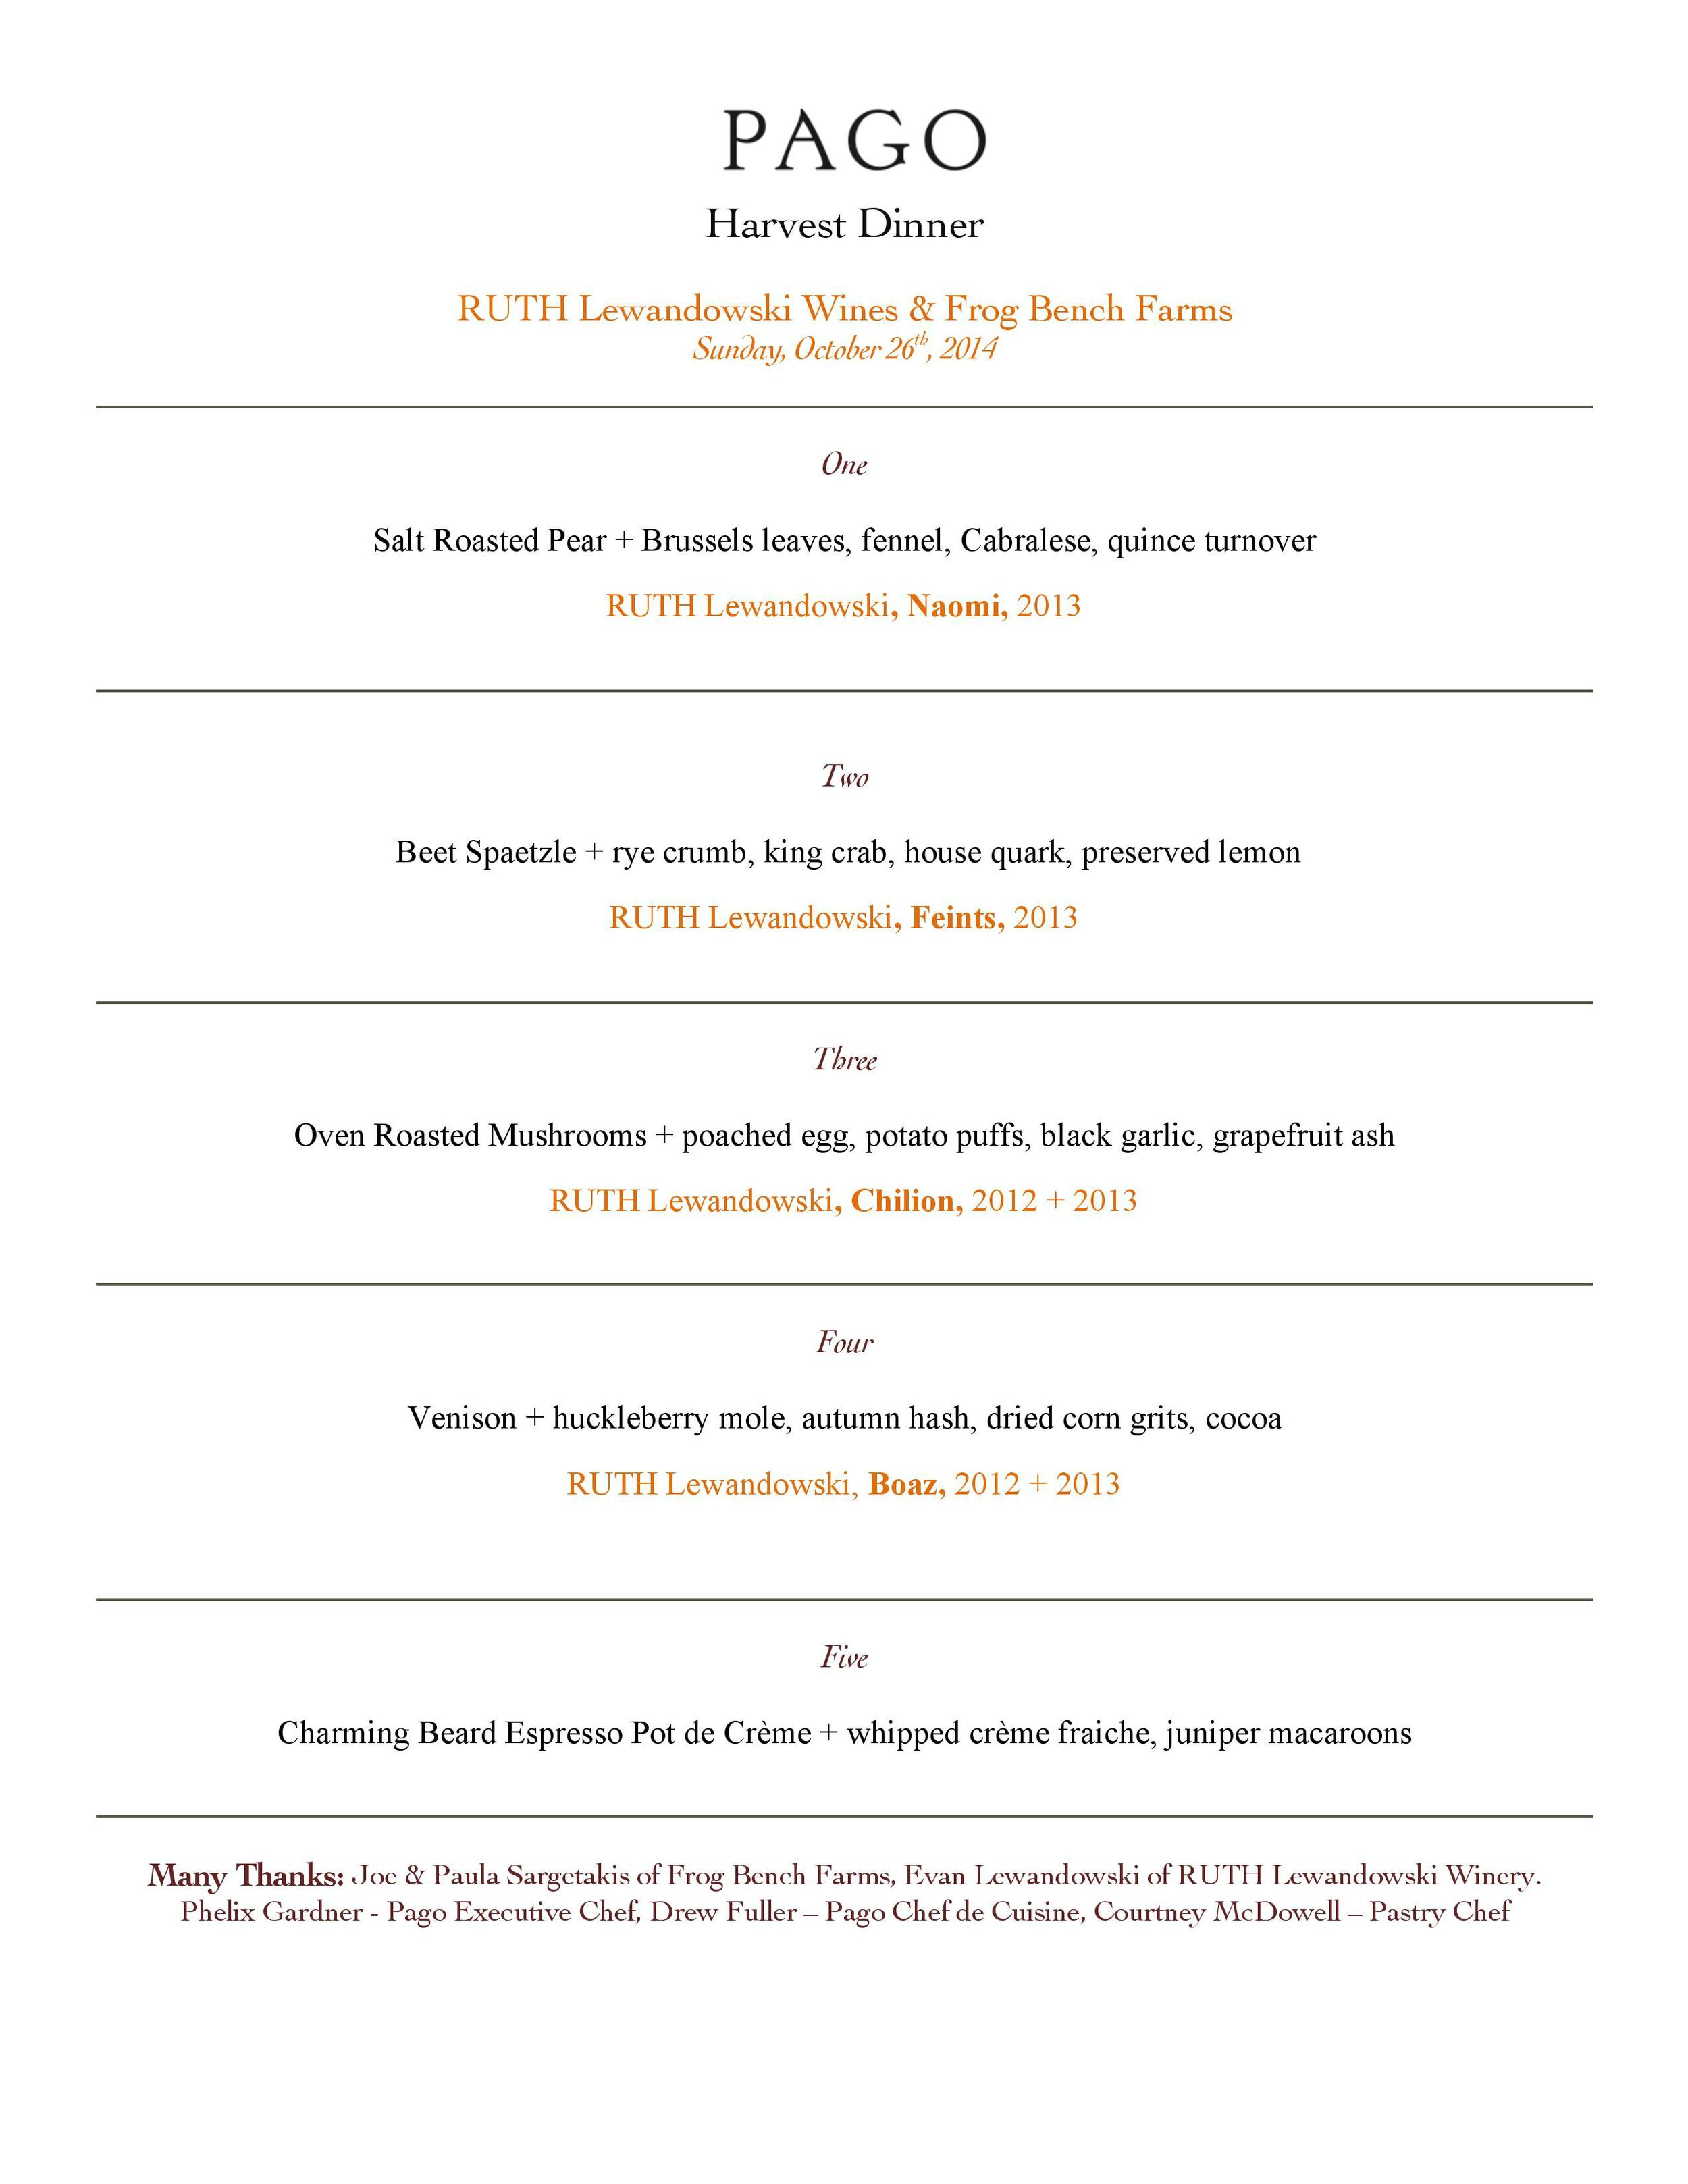 Ruth Harvest Dinner Menu